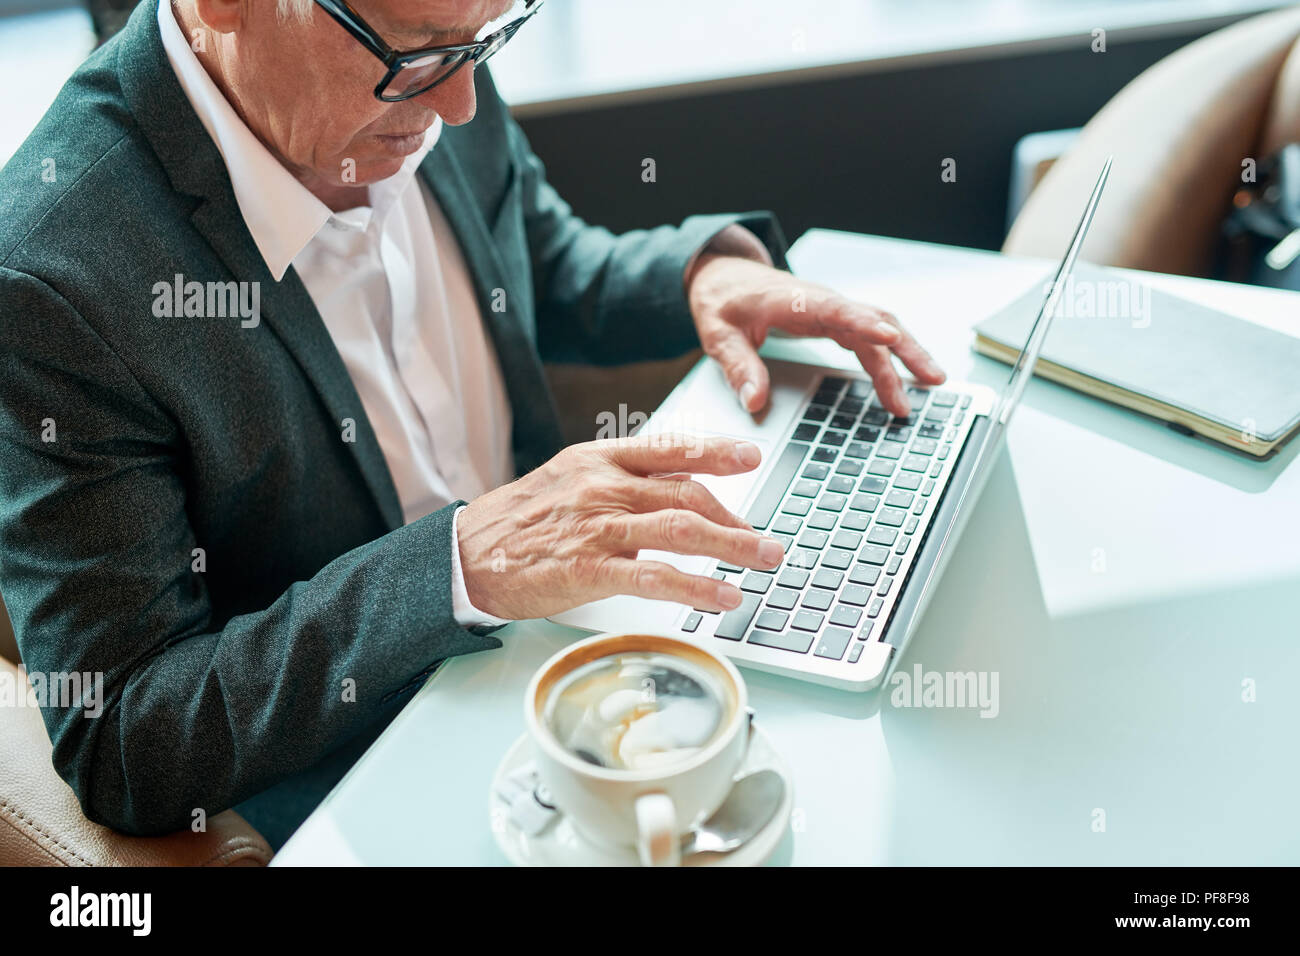 Elderly businessman using laptop in cafe - Stock Image